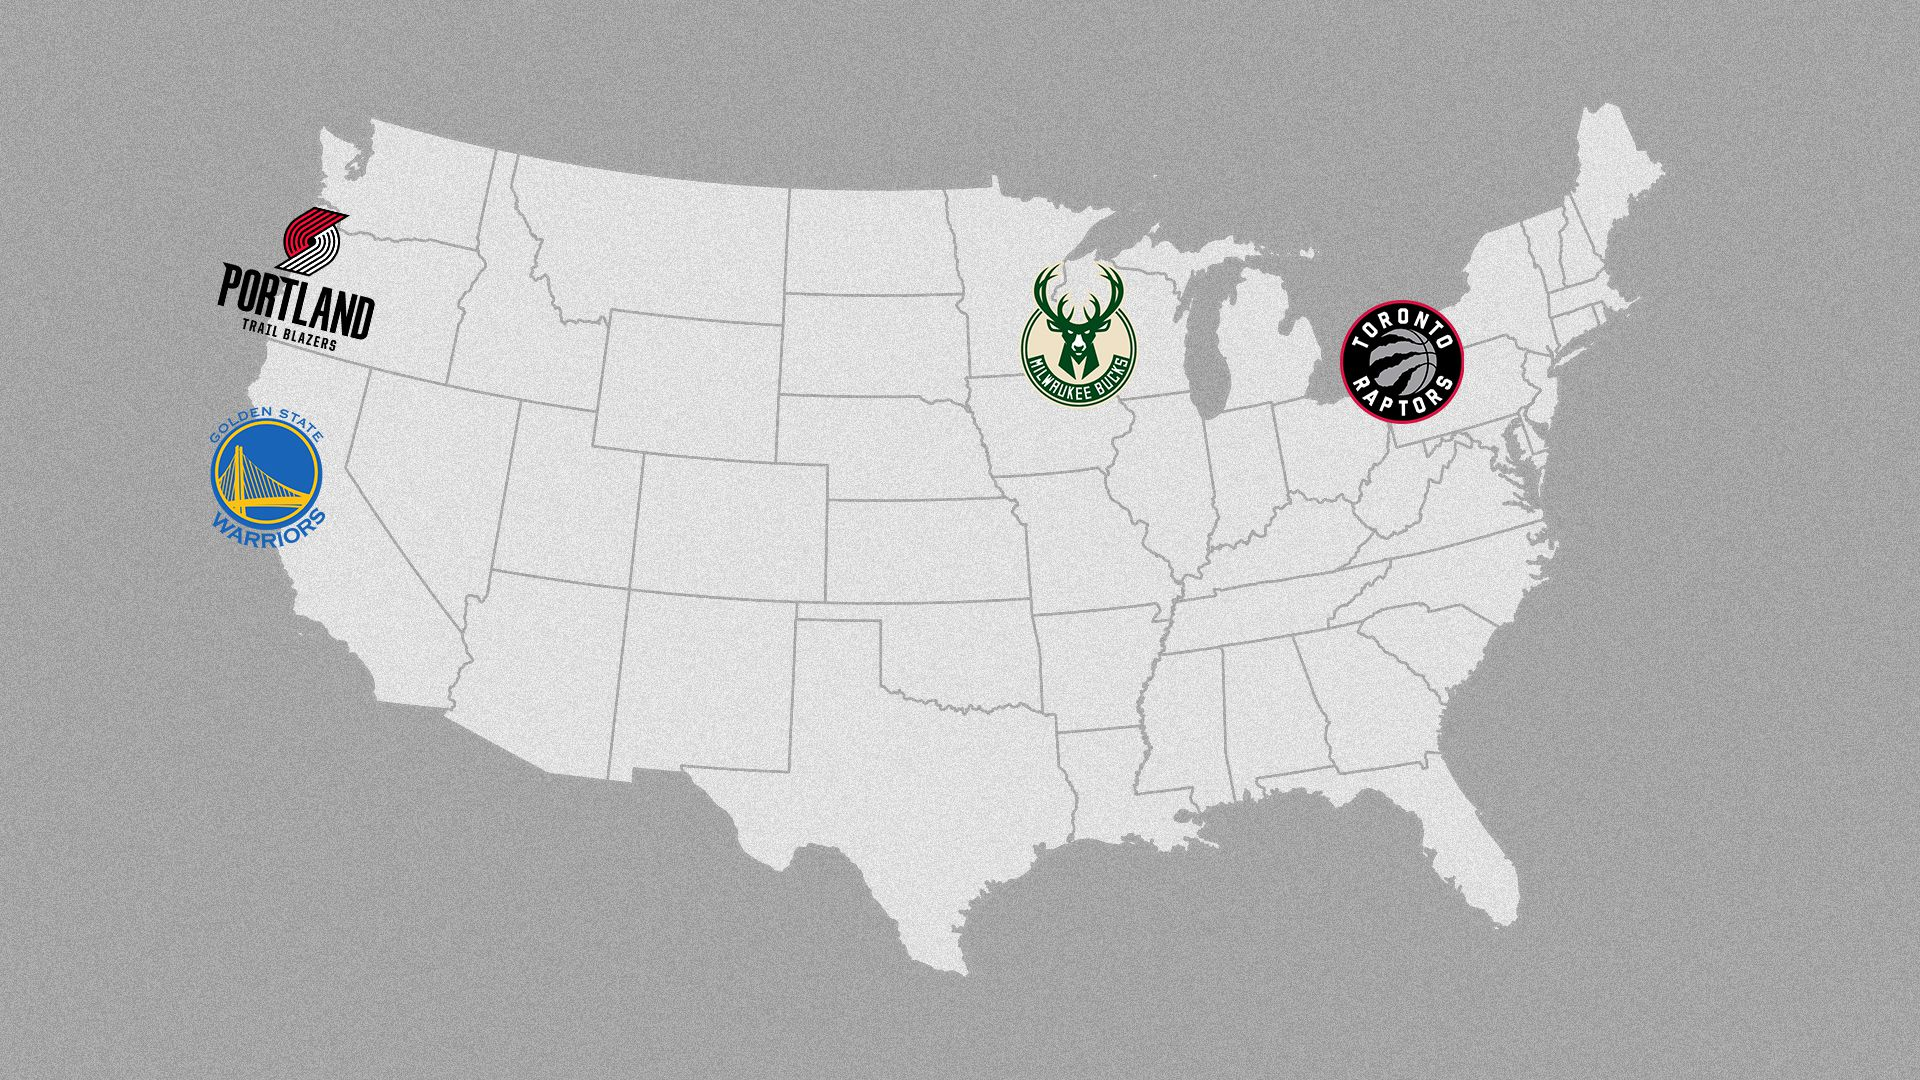 llustration of final four teams on a map